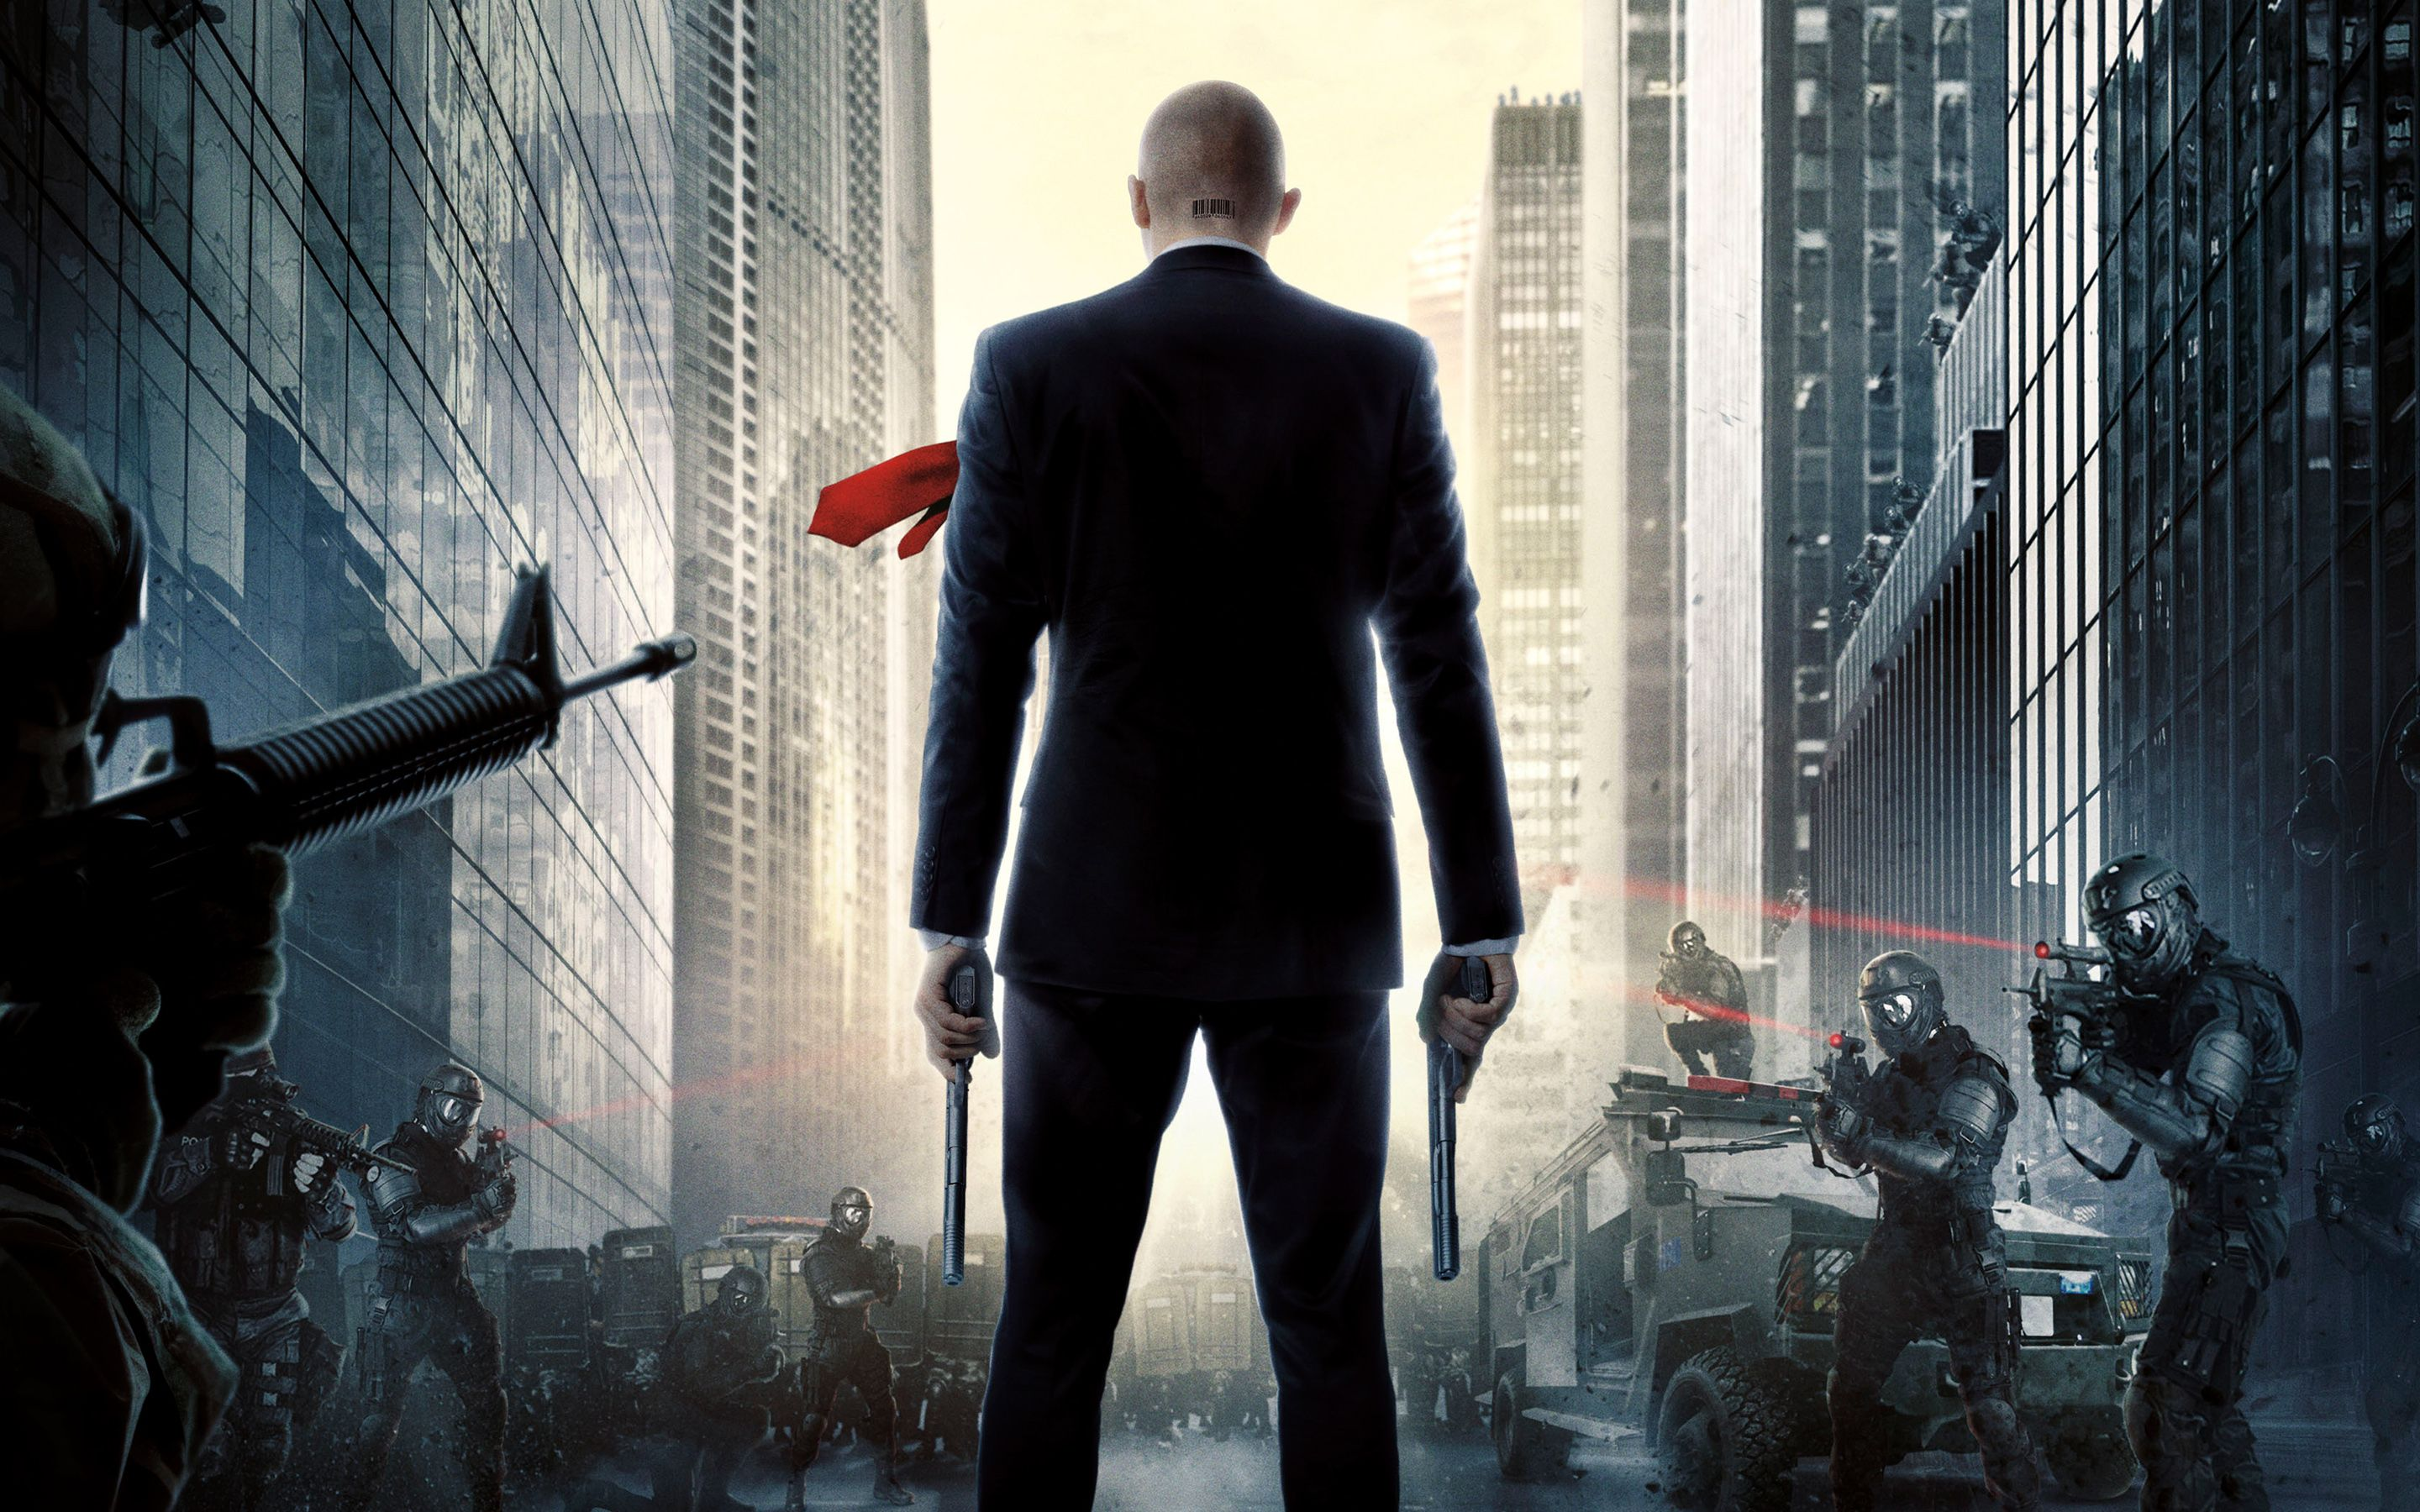 Hitman 4K wallpapers for your desktop or mobile screen free and easy to download